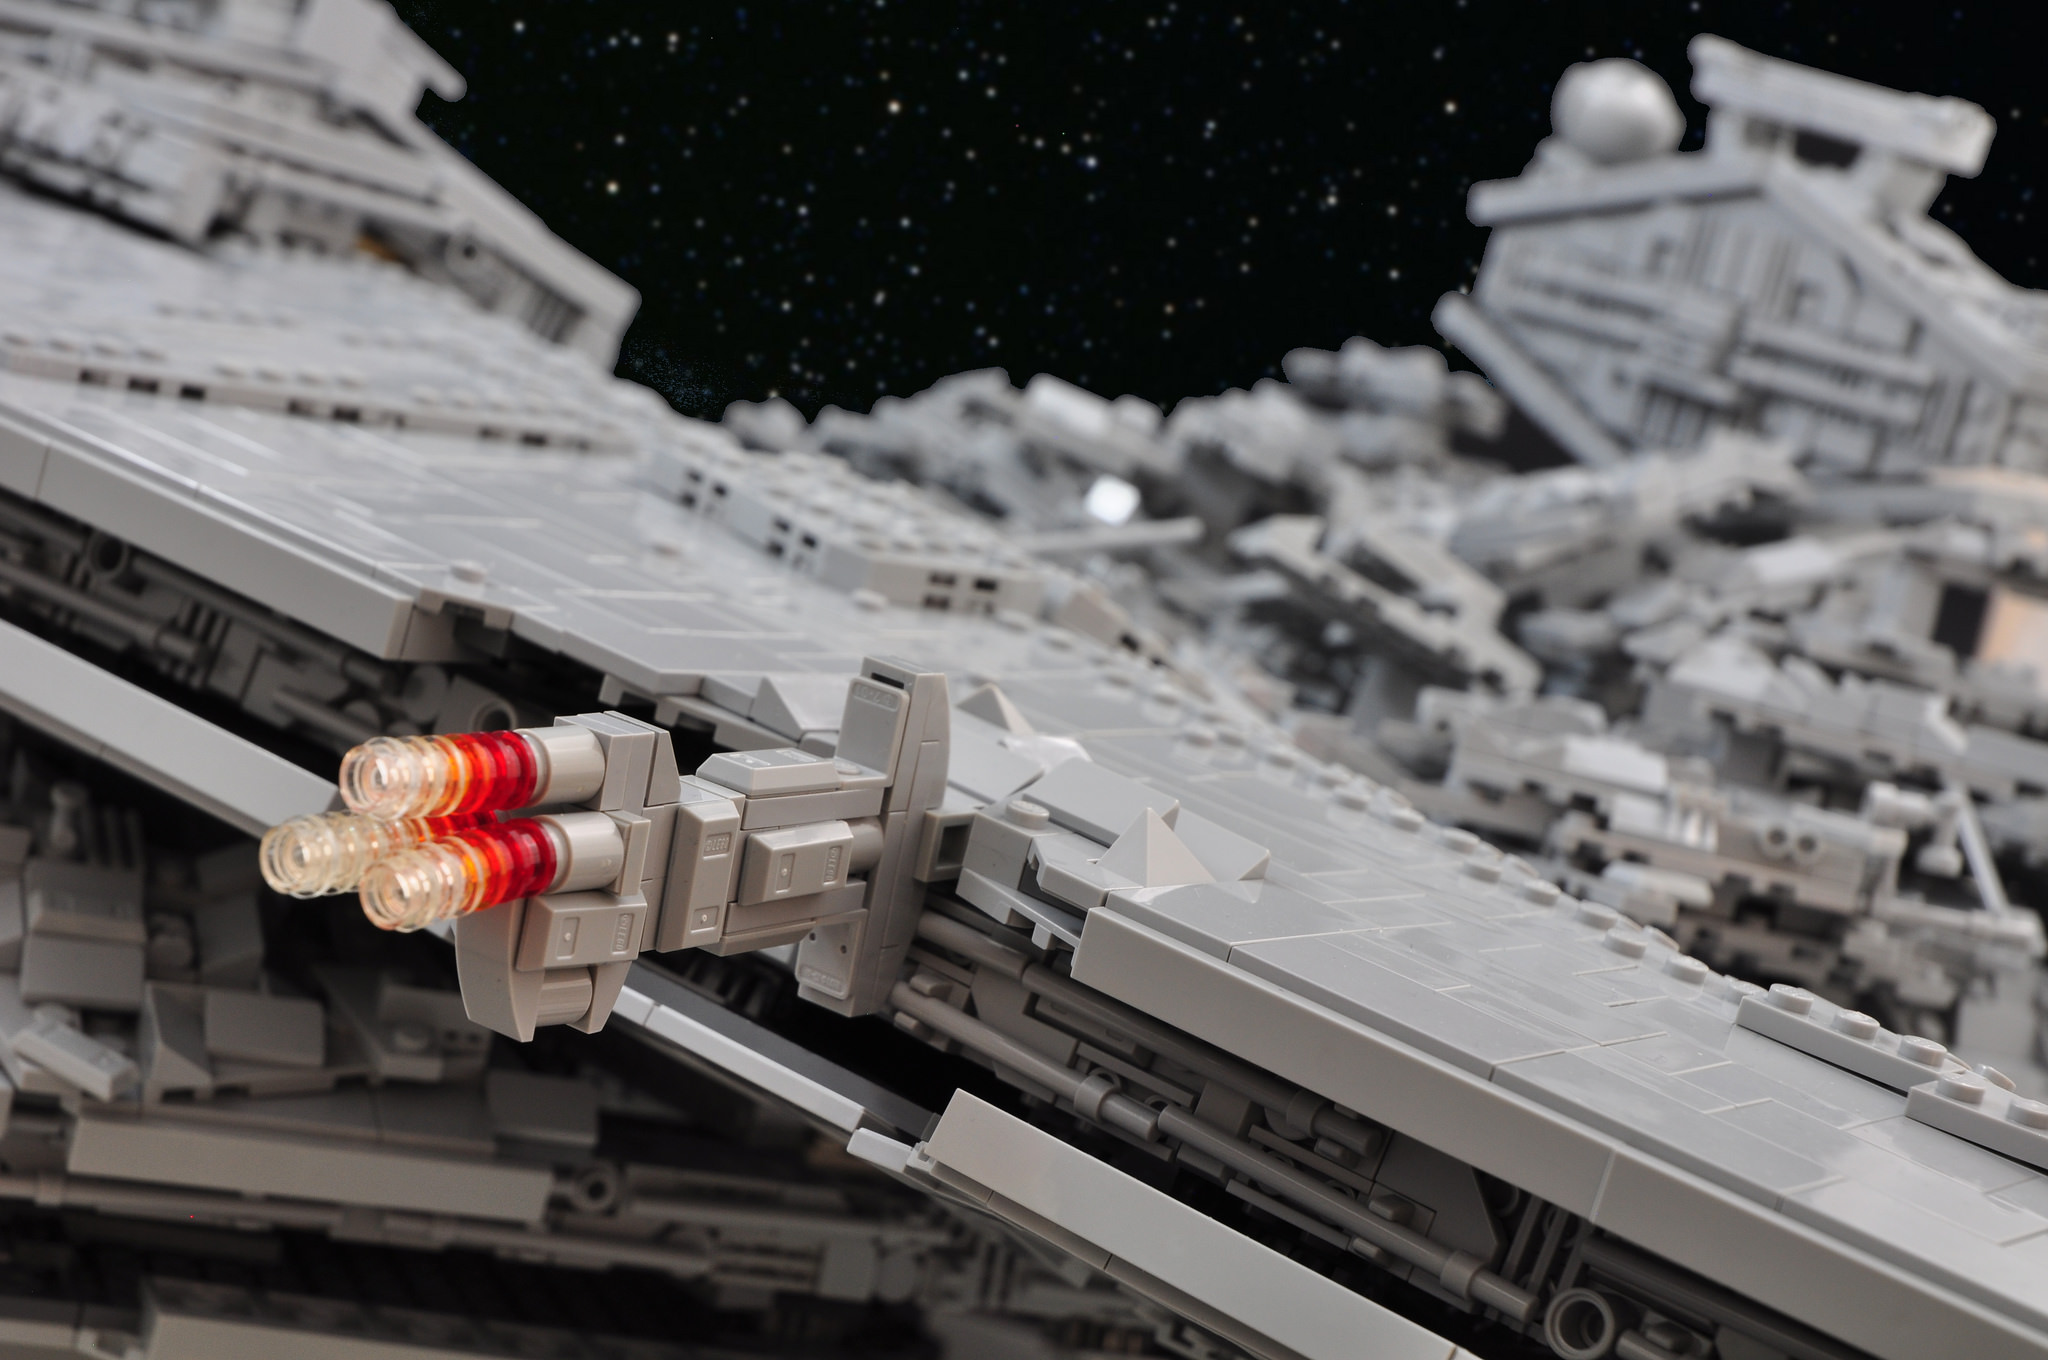 hammerhead star destroyer